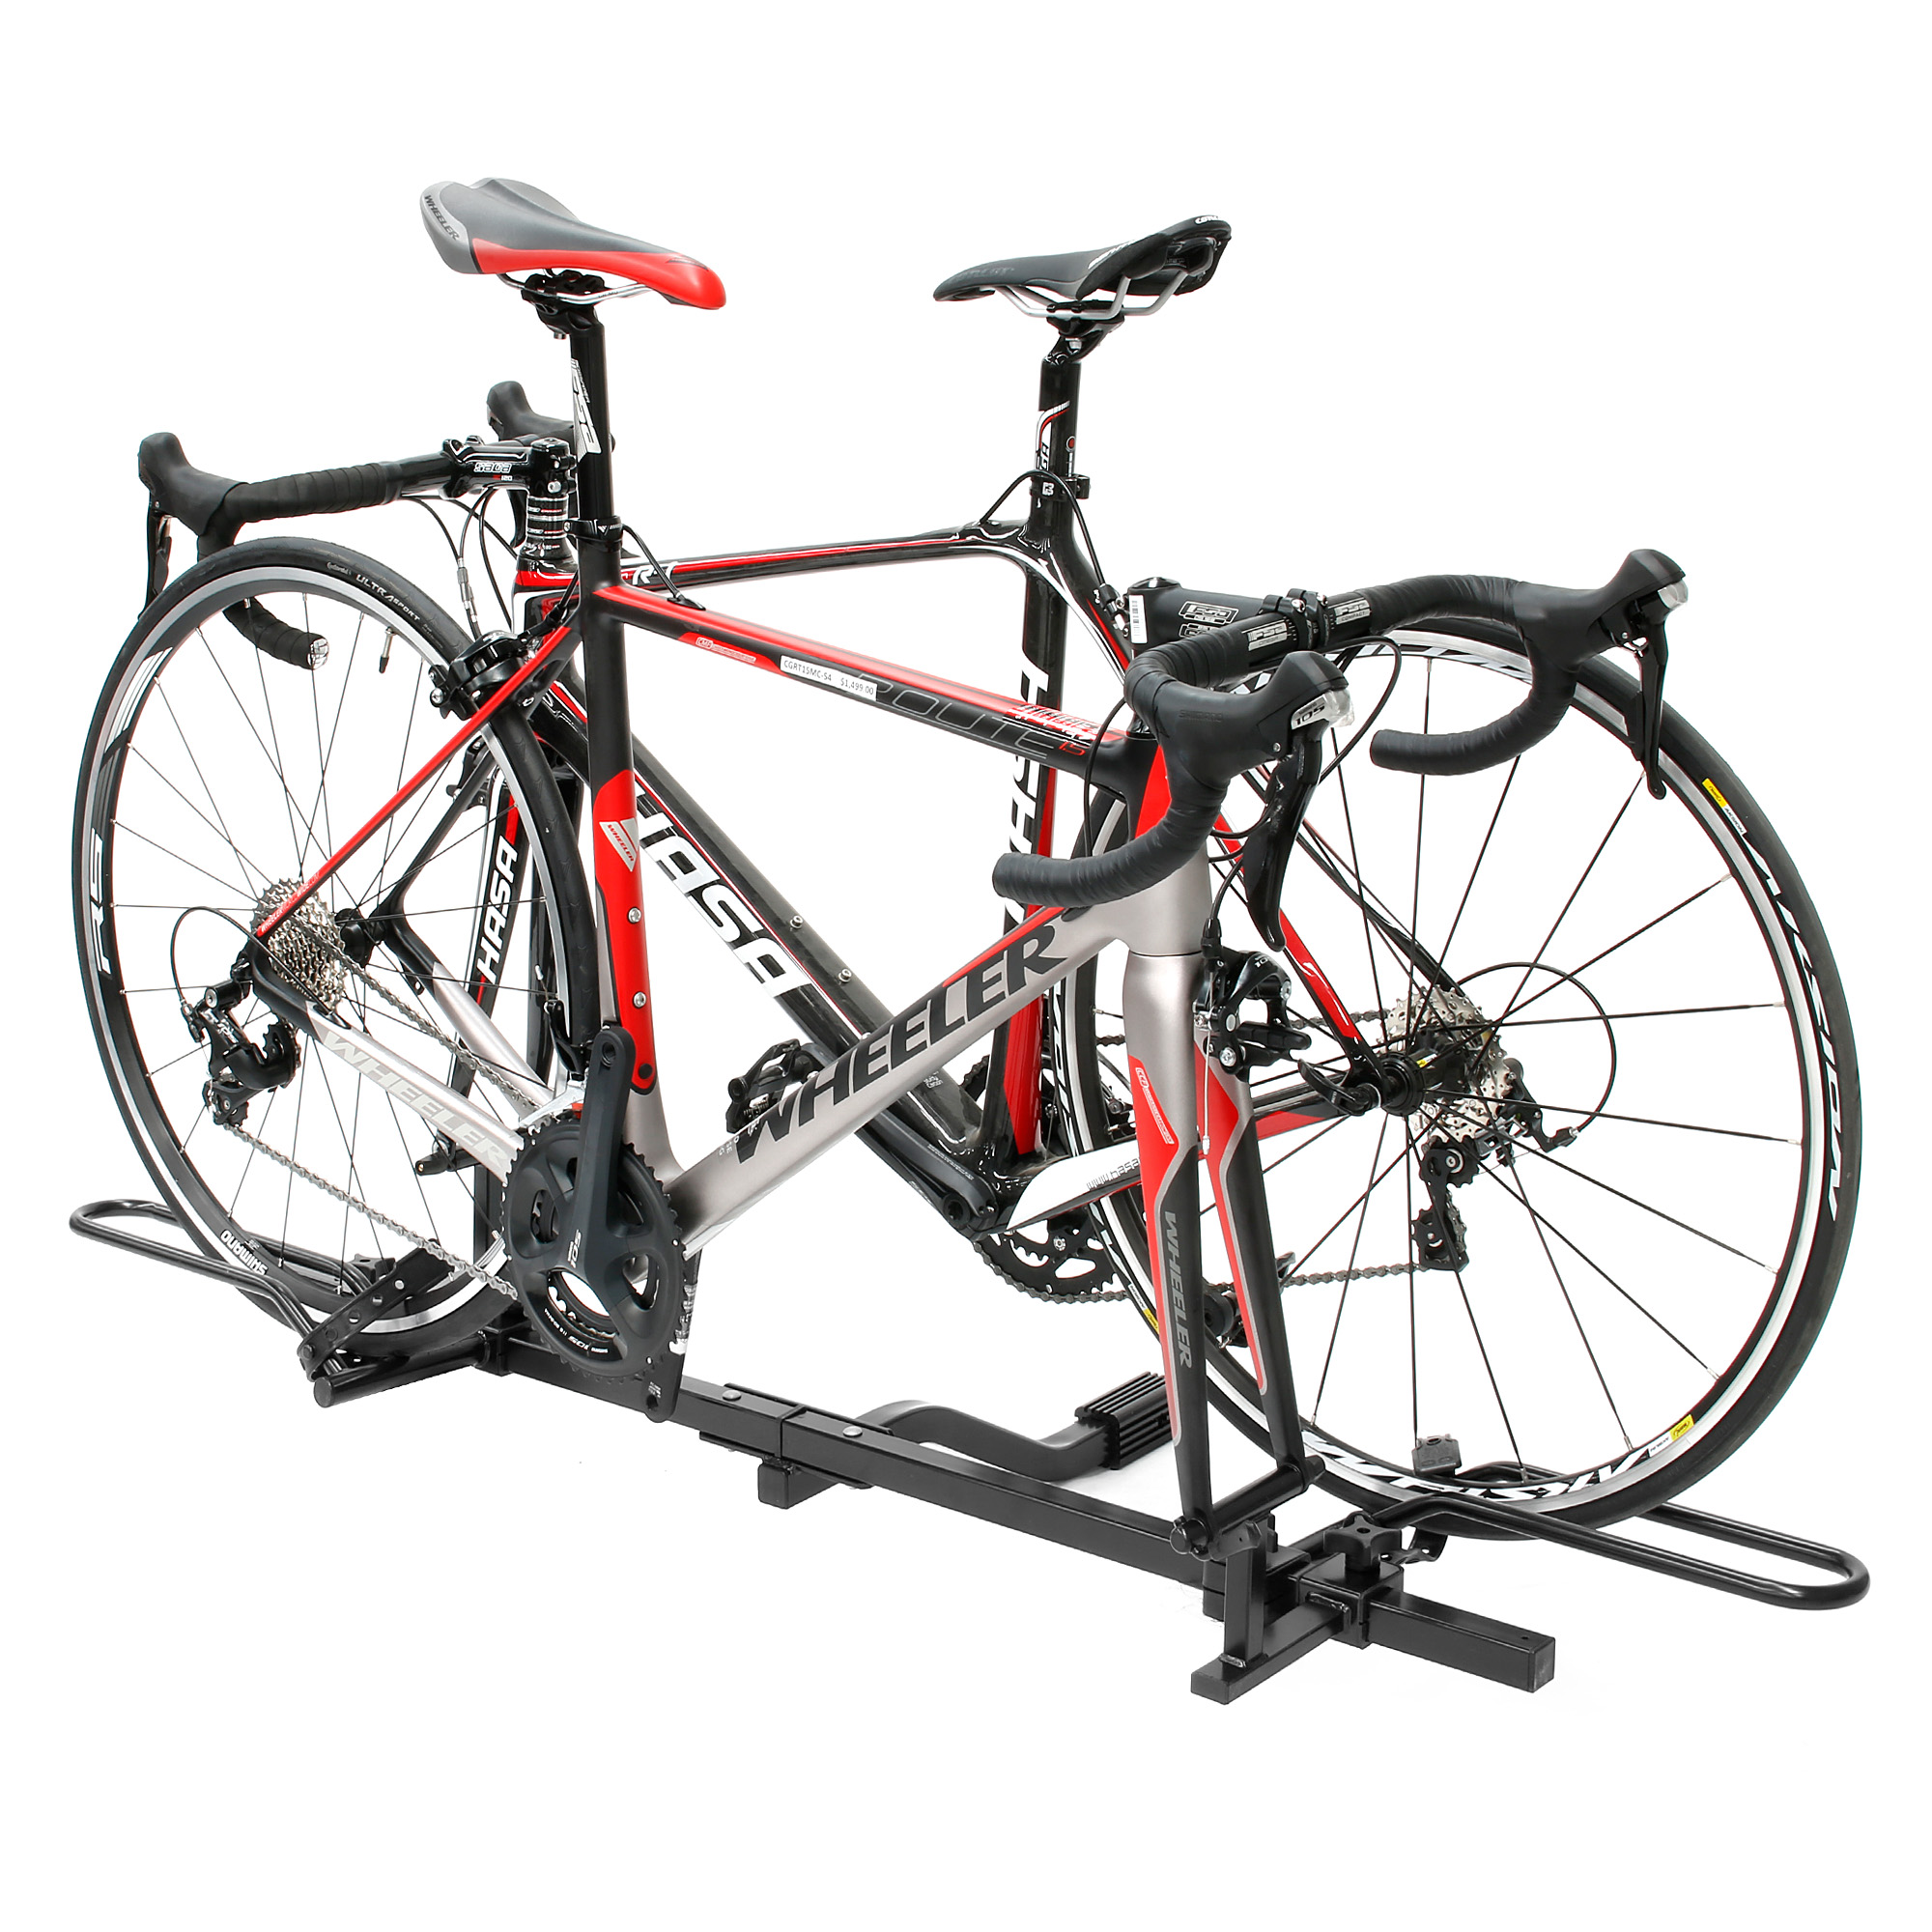 Bicycle Bike Rack Hitch Fork Mount Carrier Car 1 1 4 And